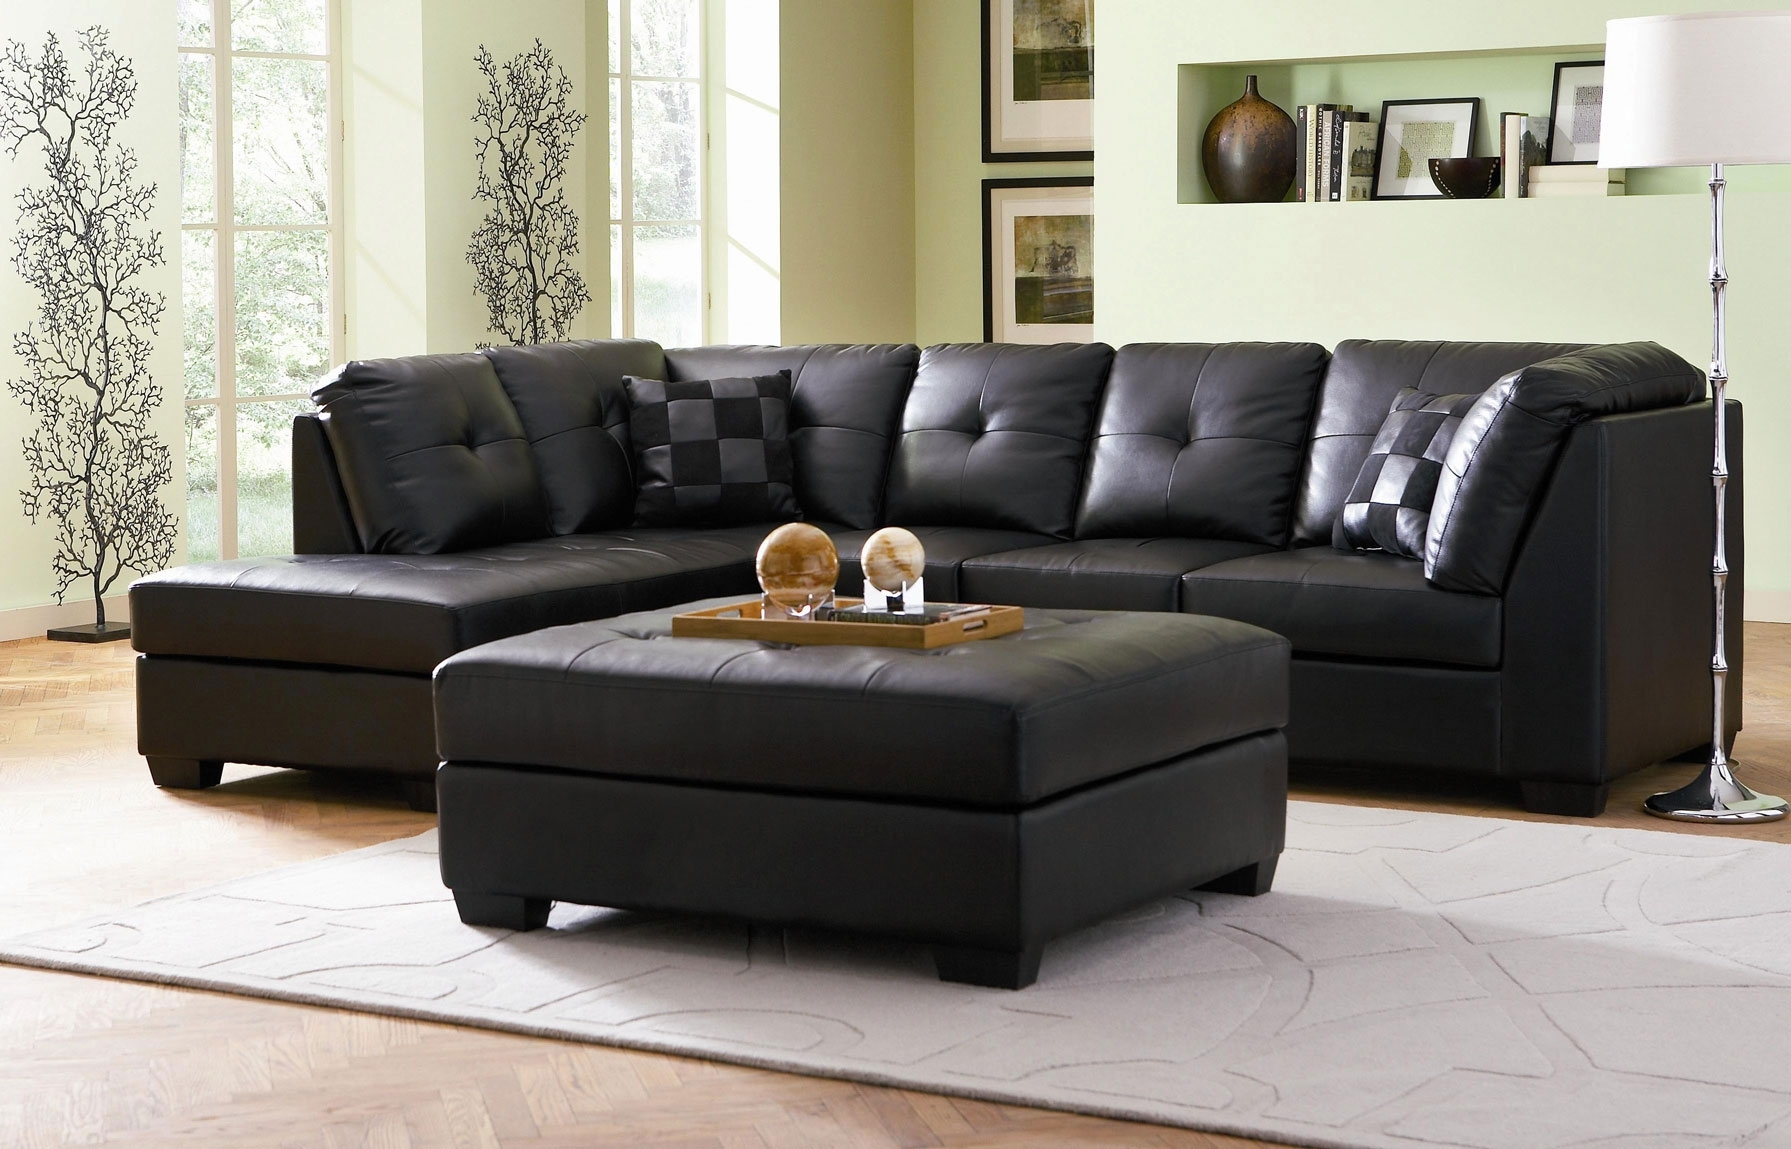 Sectional Sofa. The Best Sectional Sofas Charlotte Nc: Sectional in Sectional Sofas At Charlotte Nc (Image 9 of 15)